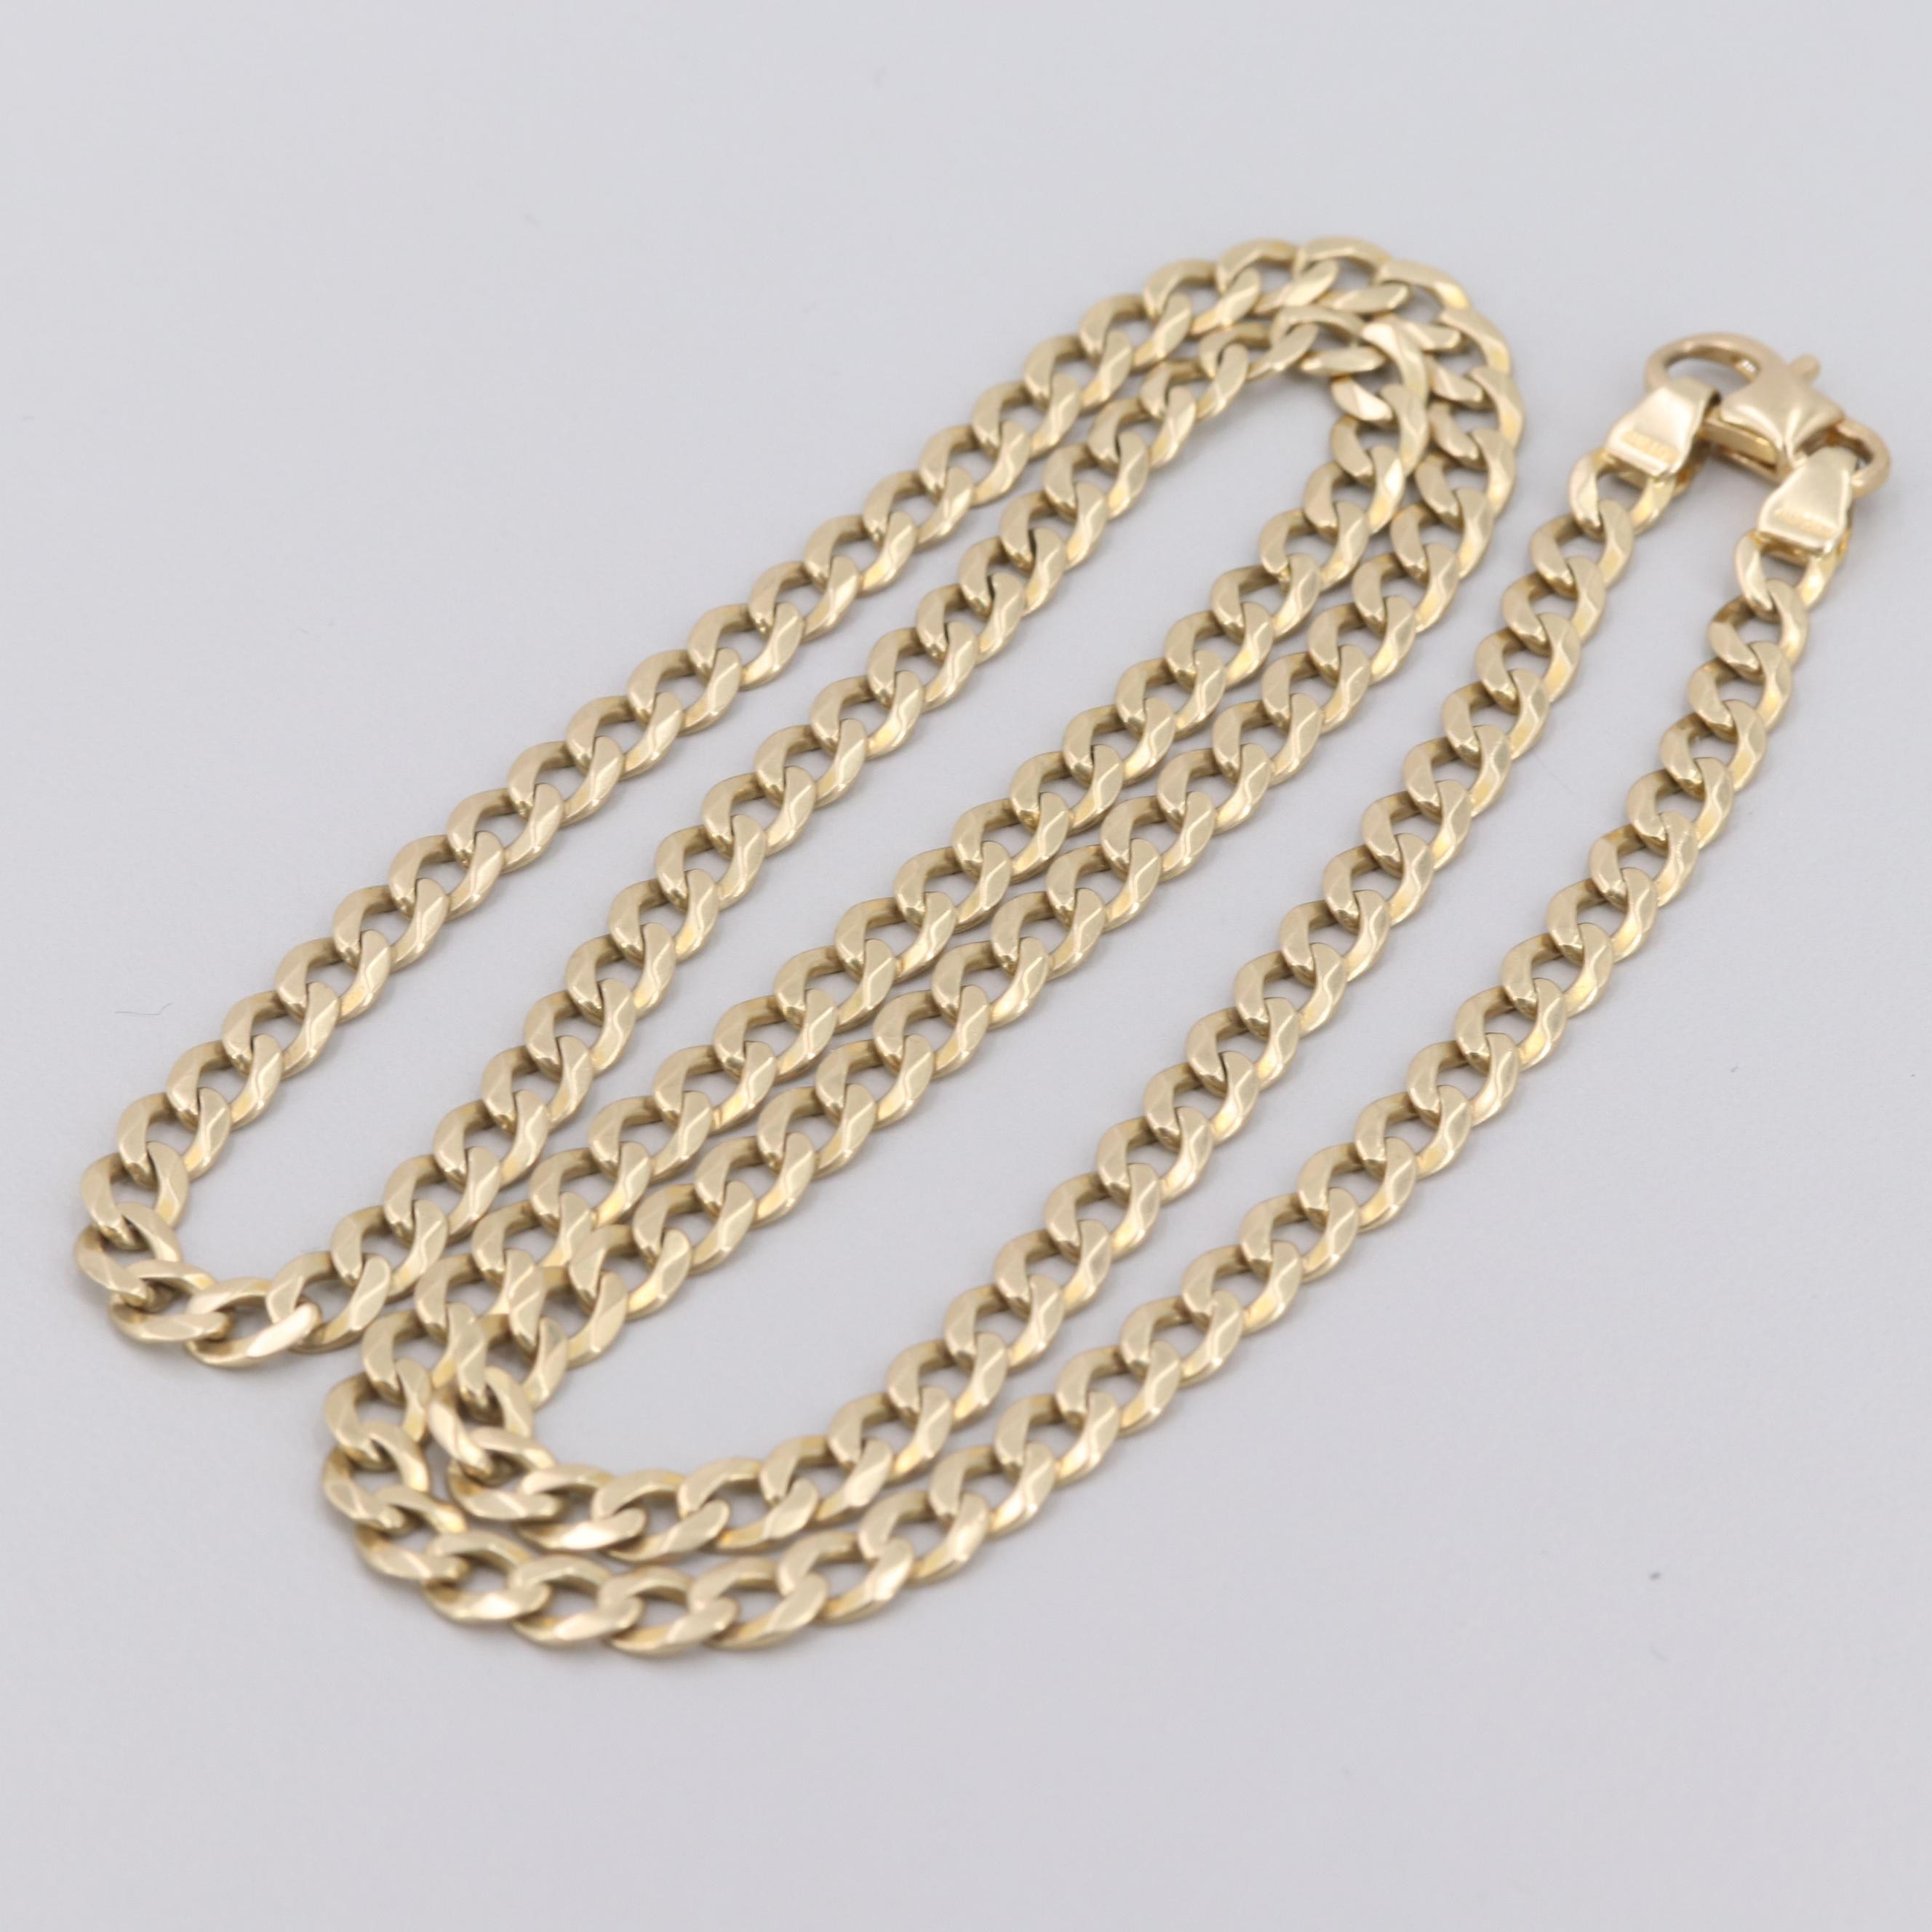 Aurafin 14K Yellow Gold Necklace